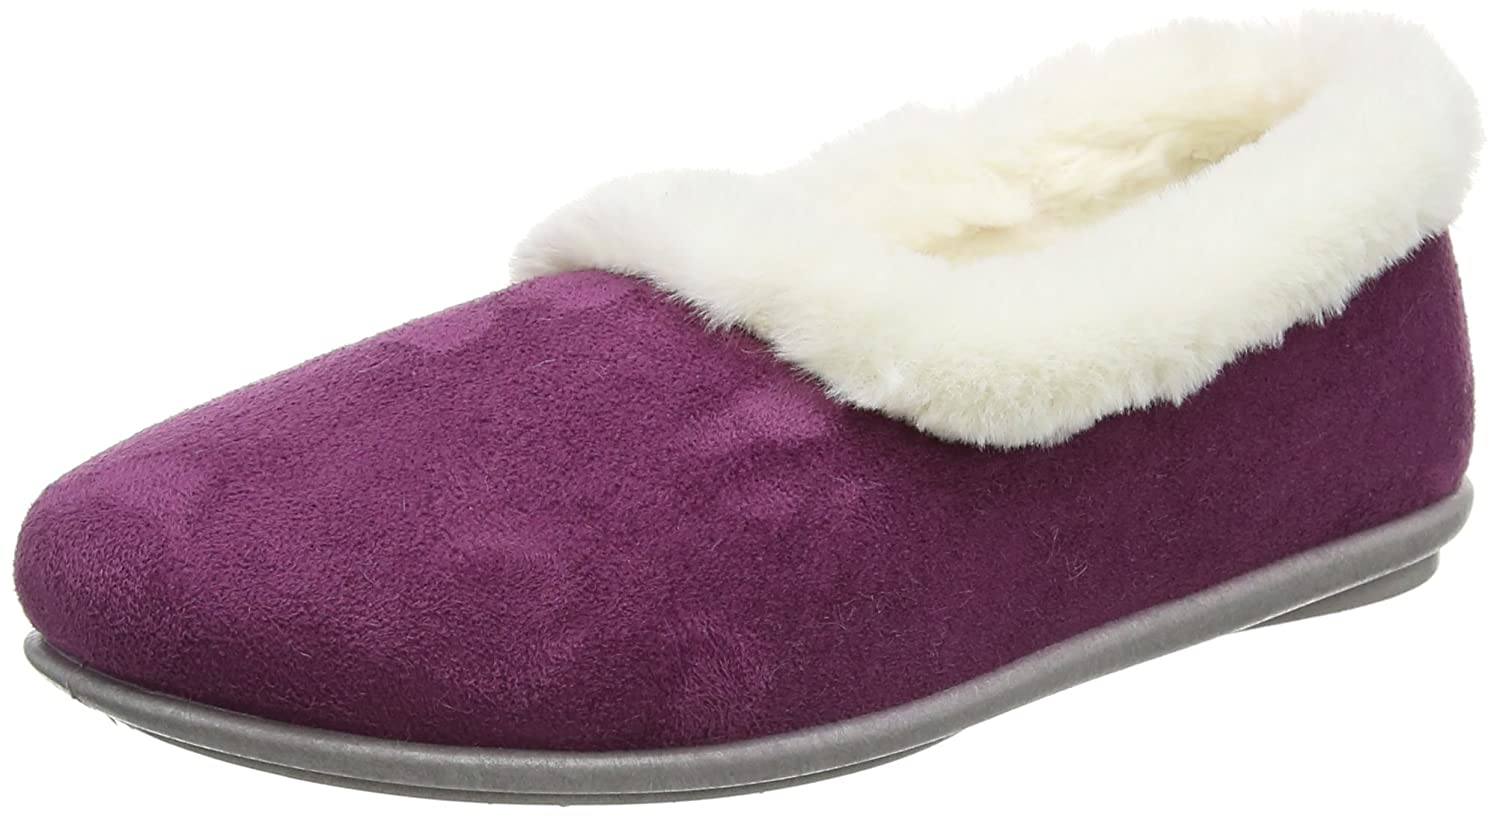 Lotus Chaussons Prue, (Cranberry) Lotus Chaussons Femme Red (Cranberry) 9a4f30b - fast-weightloss-diet.space